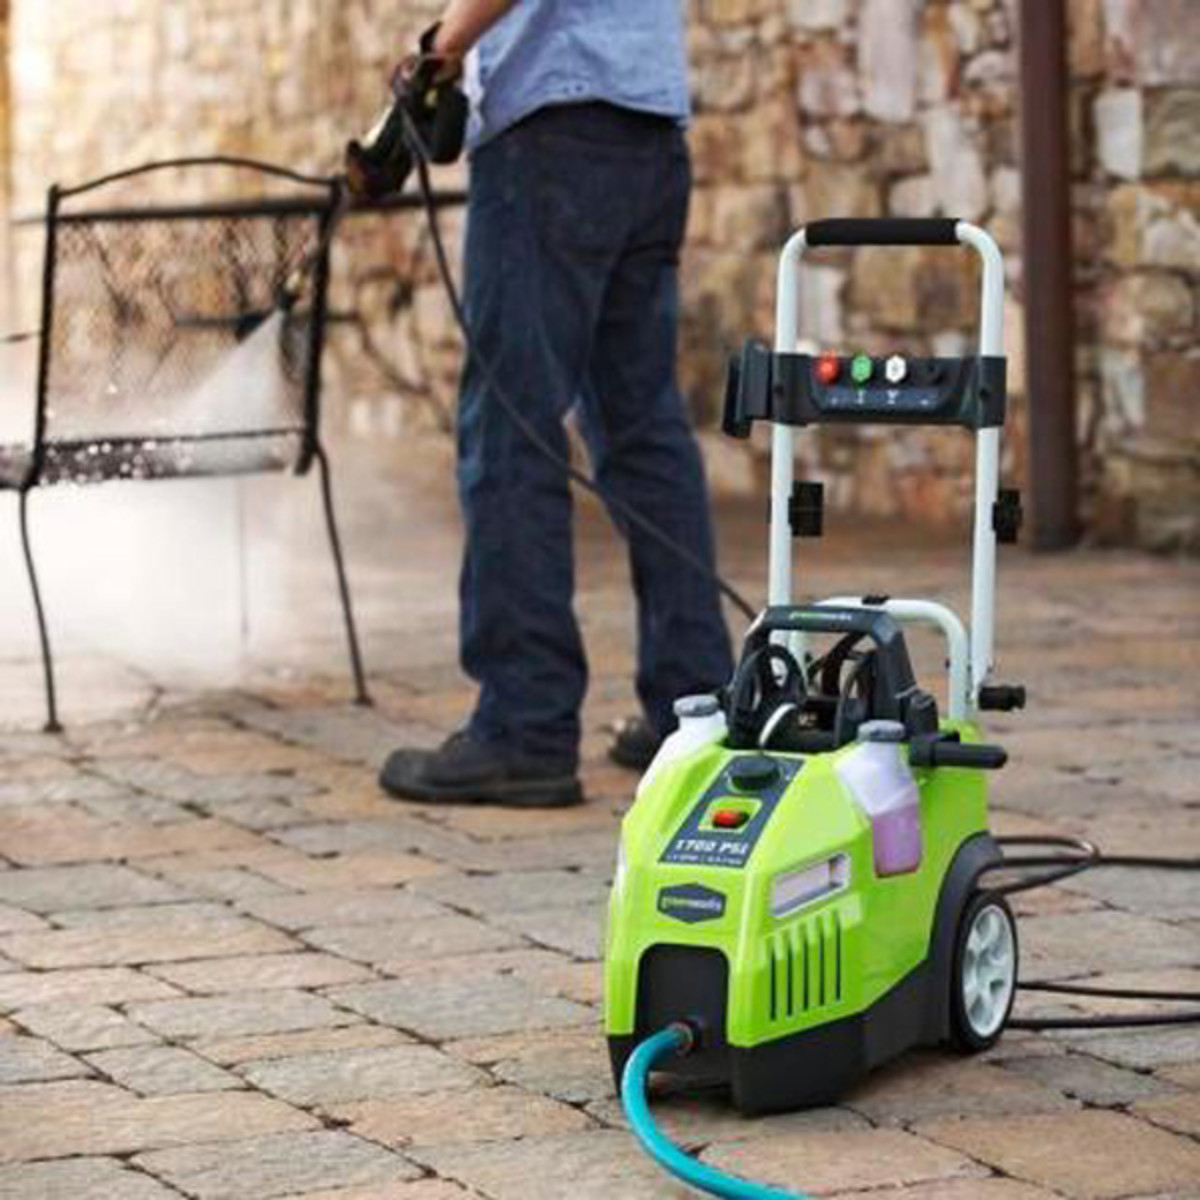 Power washing outdoor furniture and surfaces is a great way to remove dirt and grime from the previous winter.